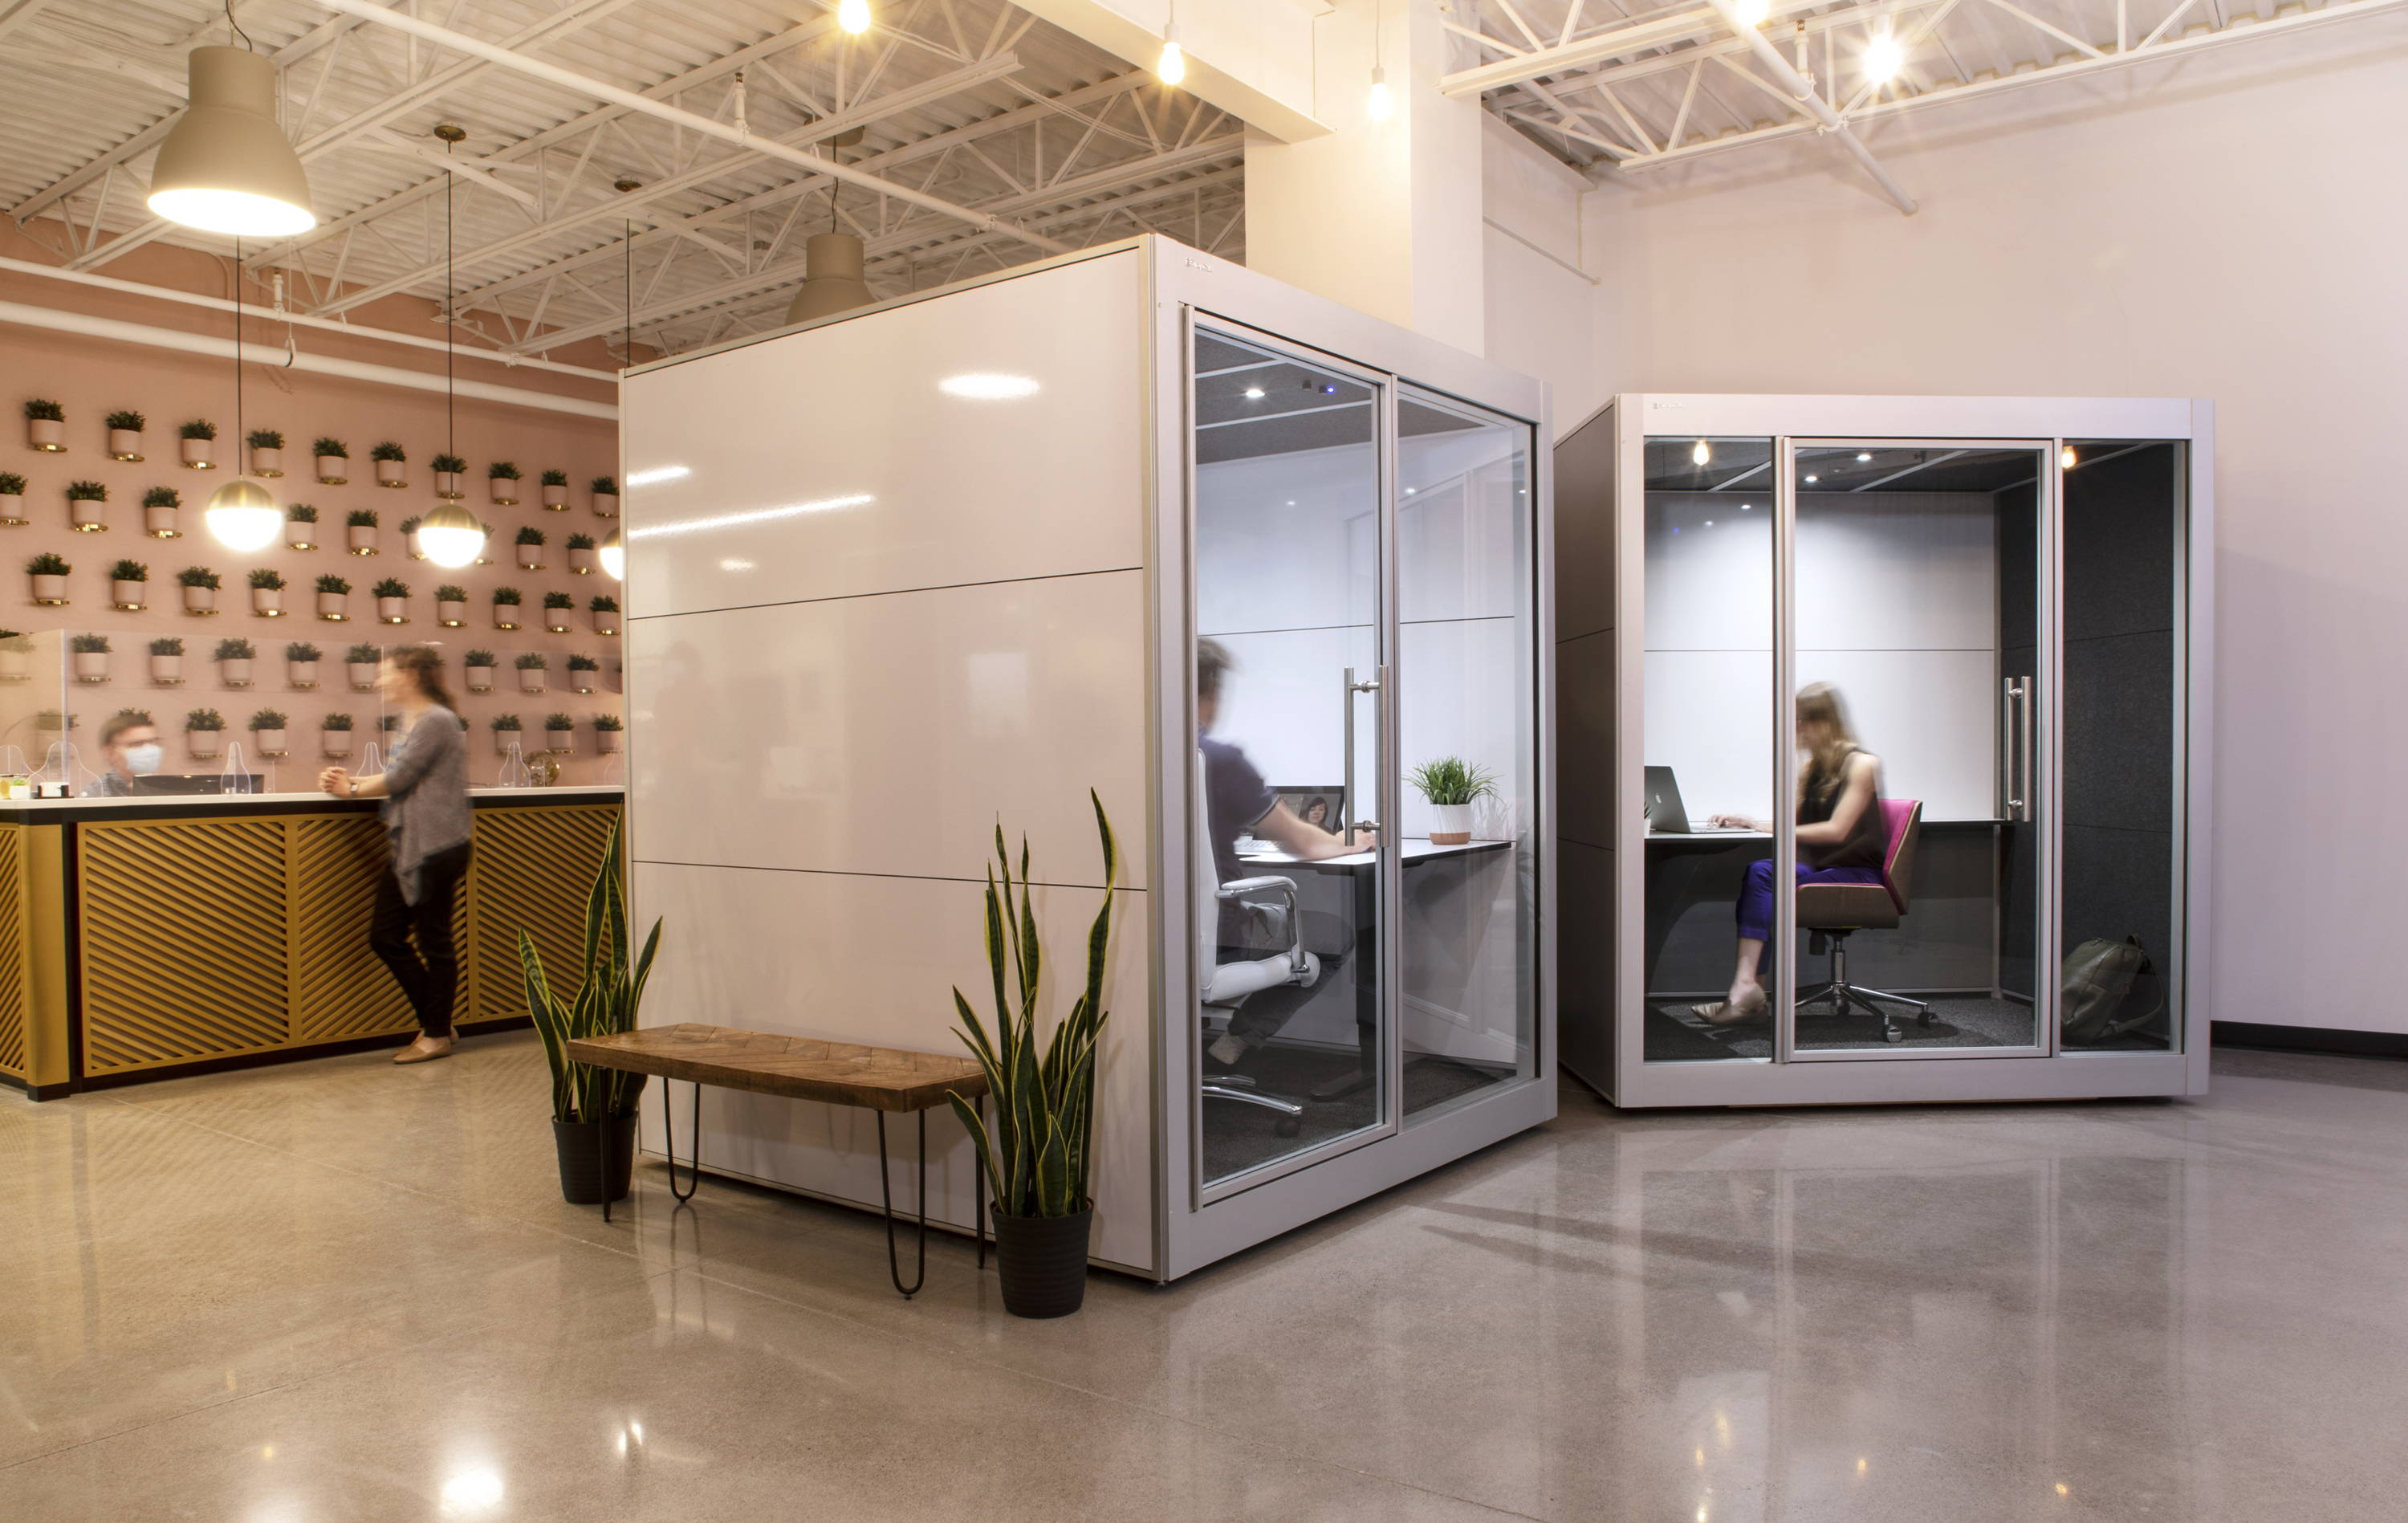 Office pods at Fractal Coworking Space in Kingston, Ontario - SnapCab Workspace